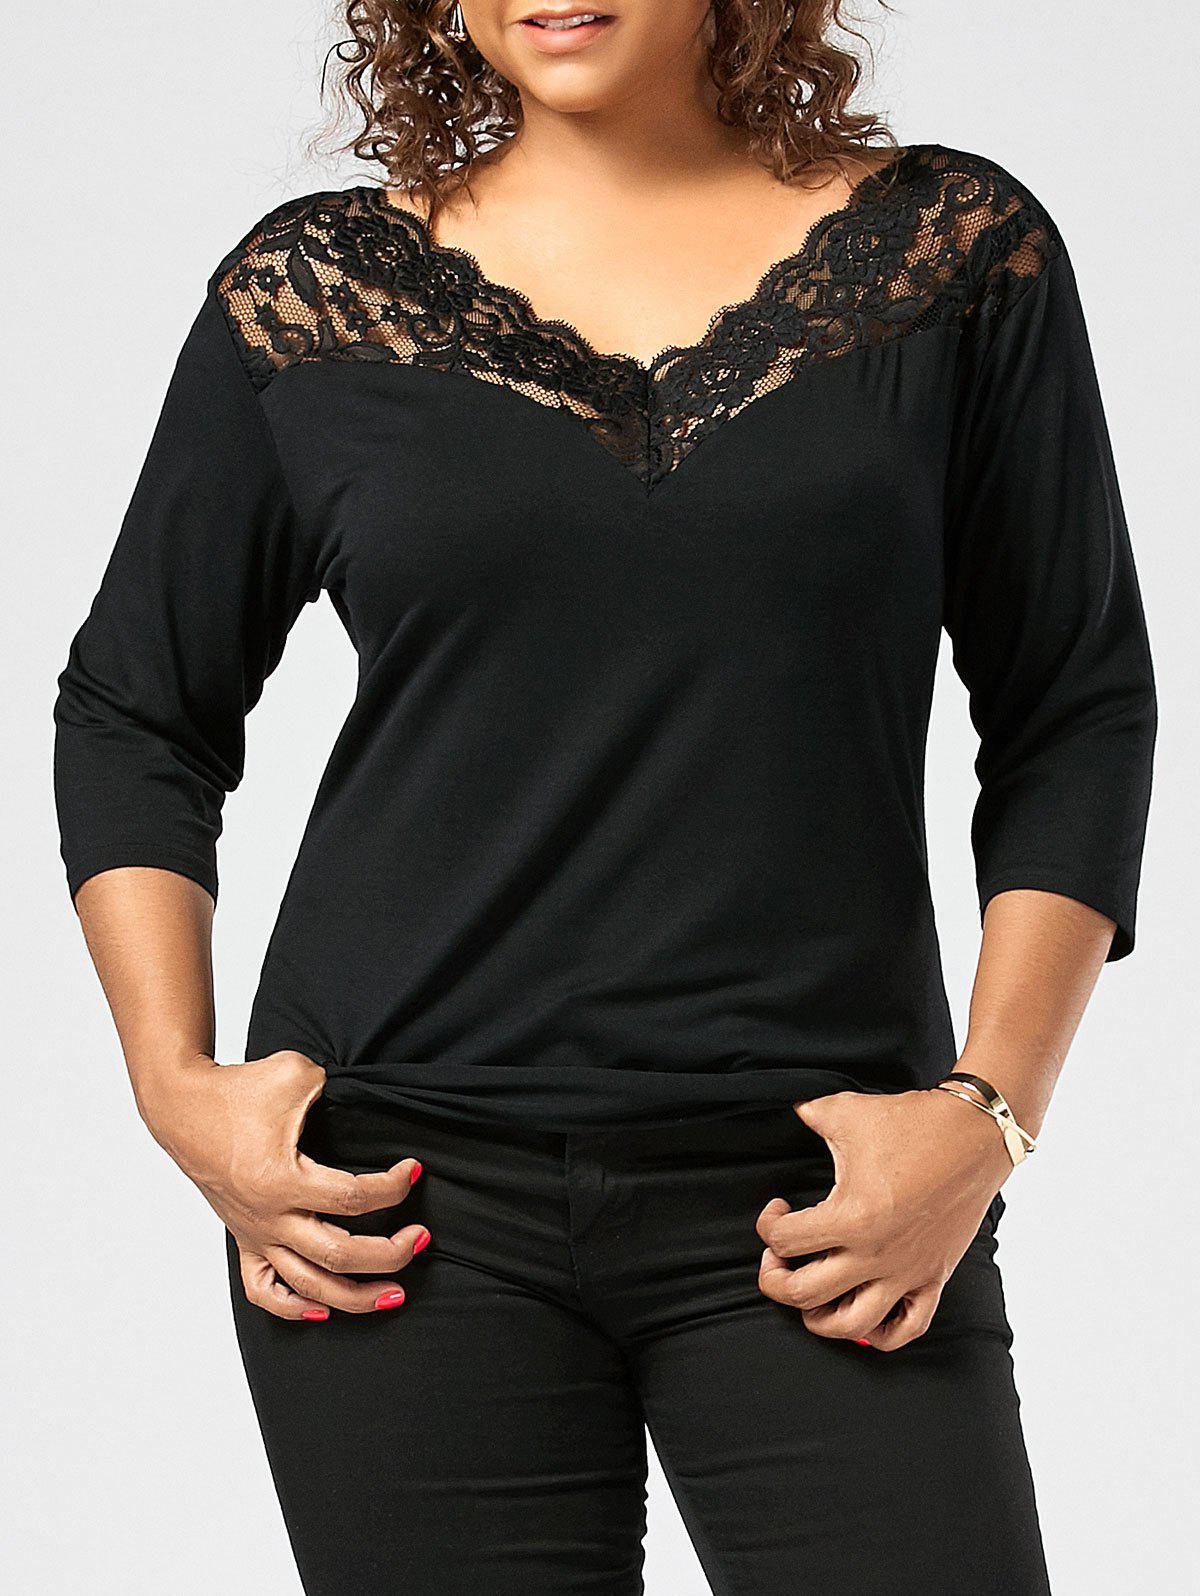 Lace Sheer Trim Plus Size T-shirt plus size sheer lace trim ruched top